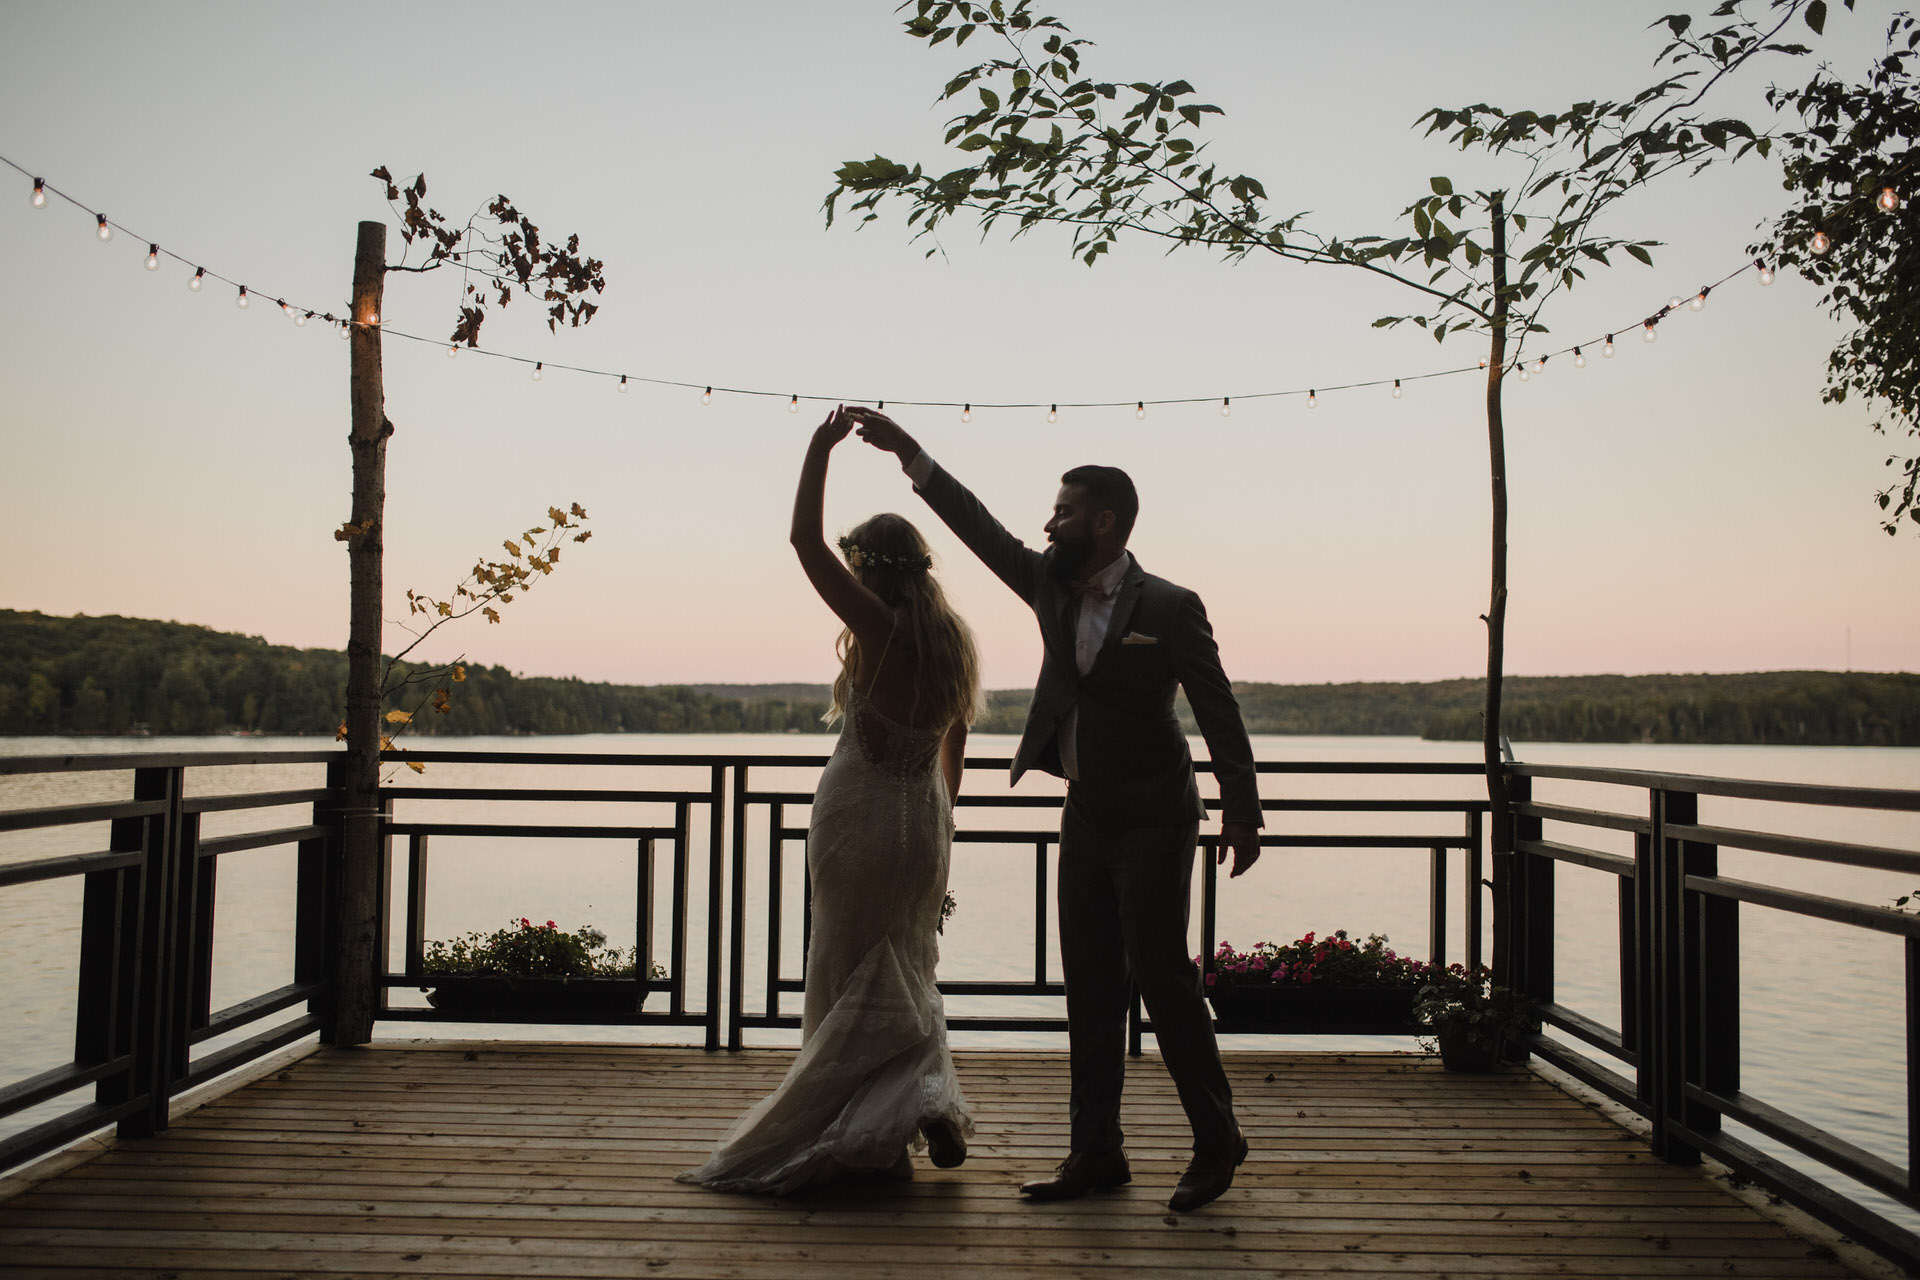 Muskoka Wedding - first dance on the dock